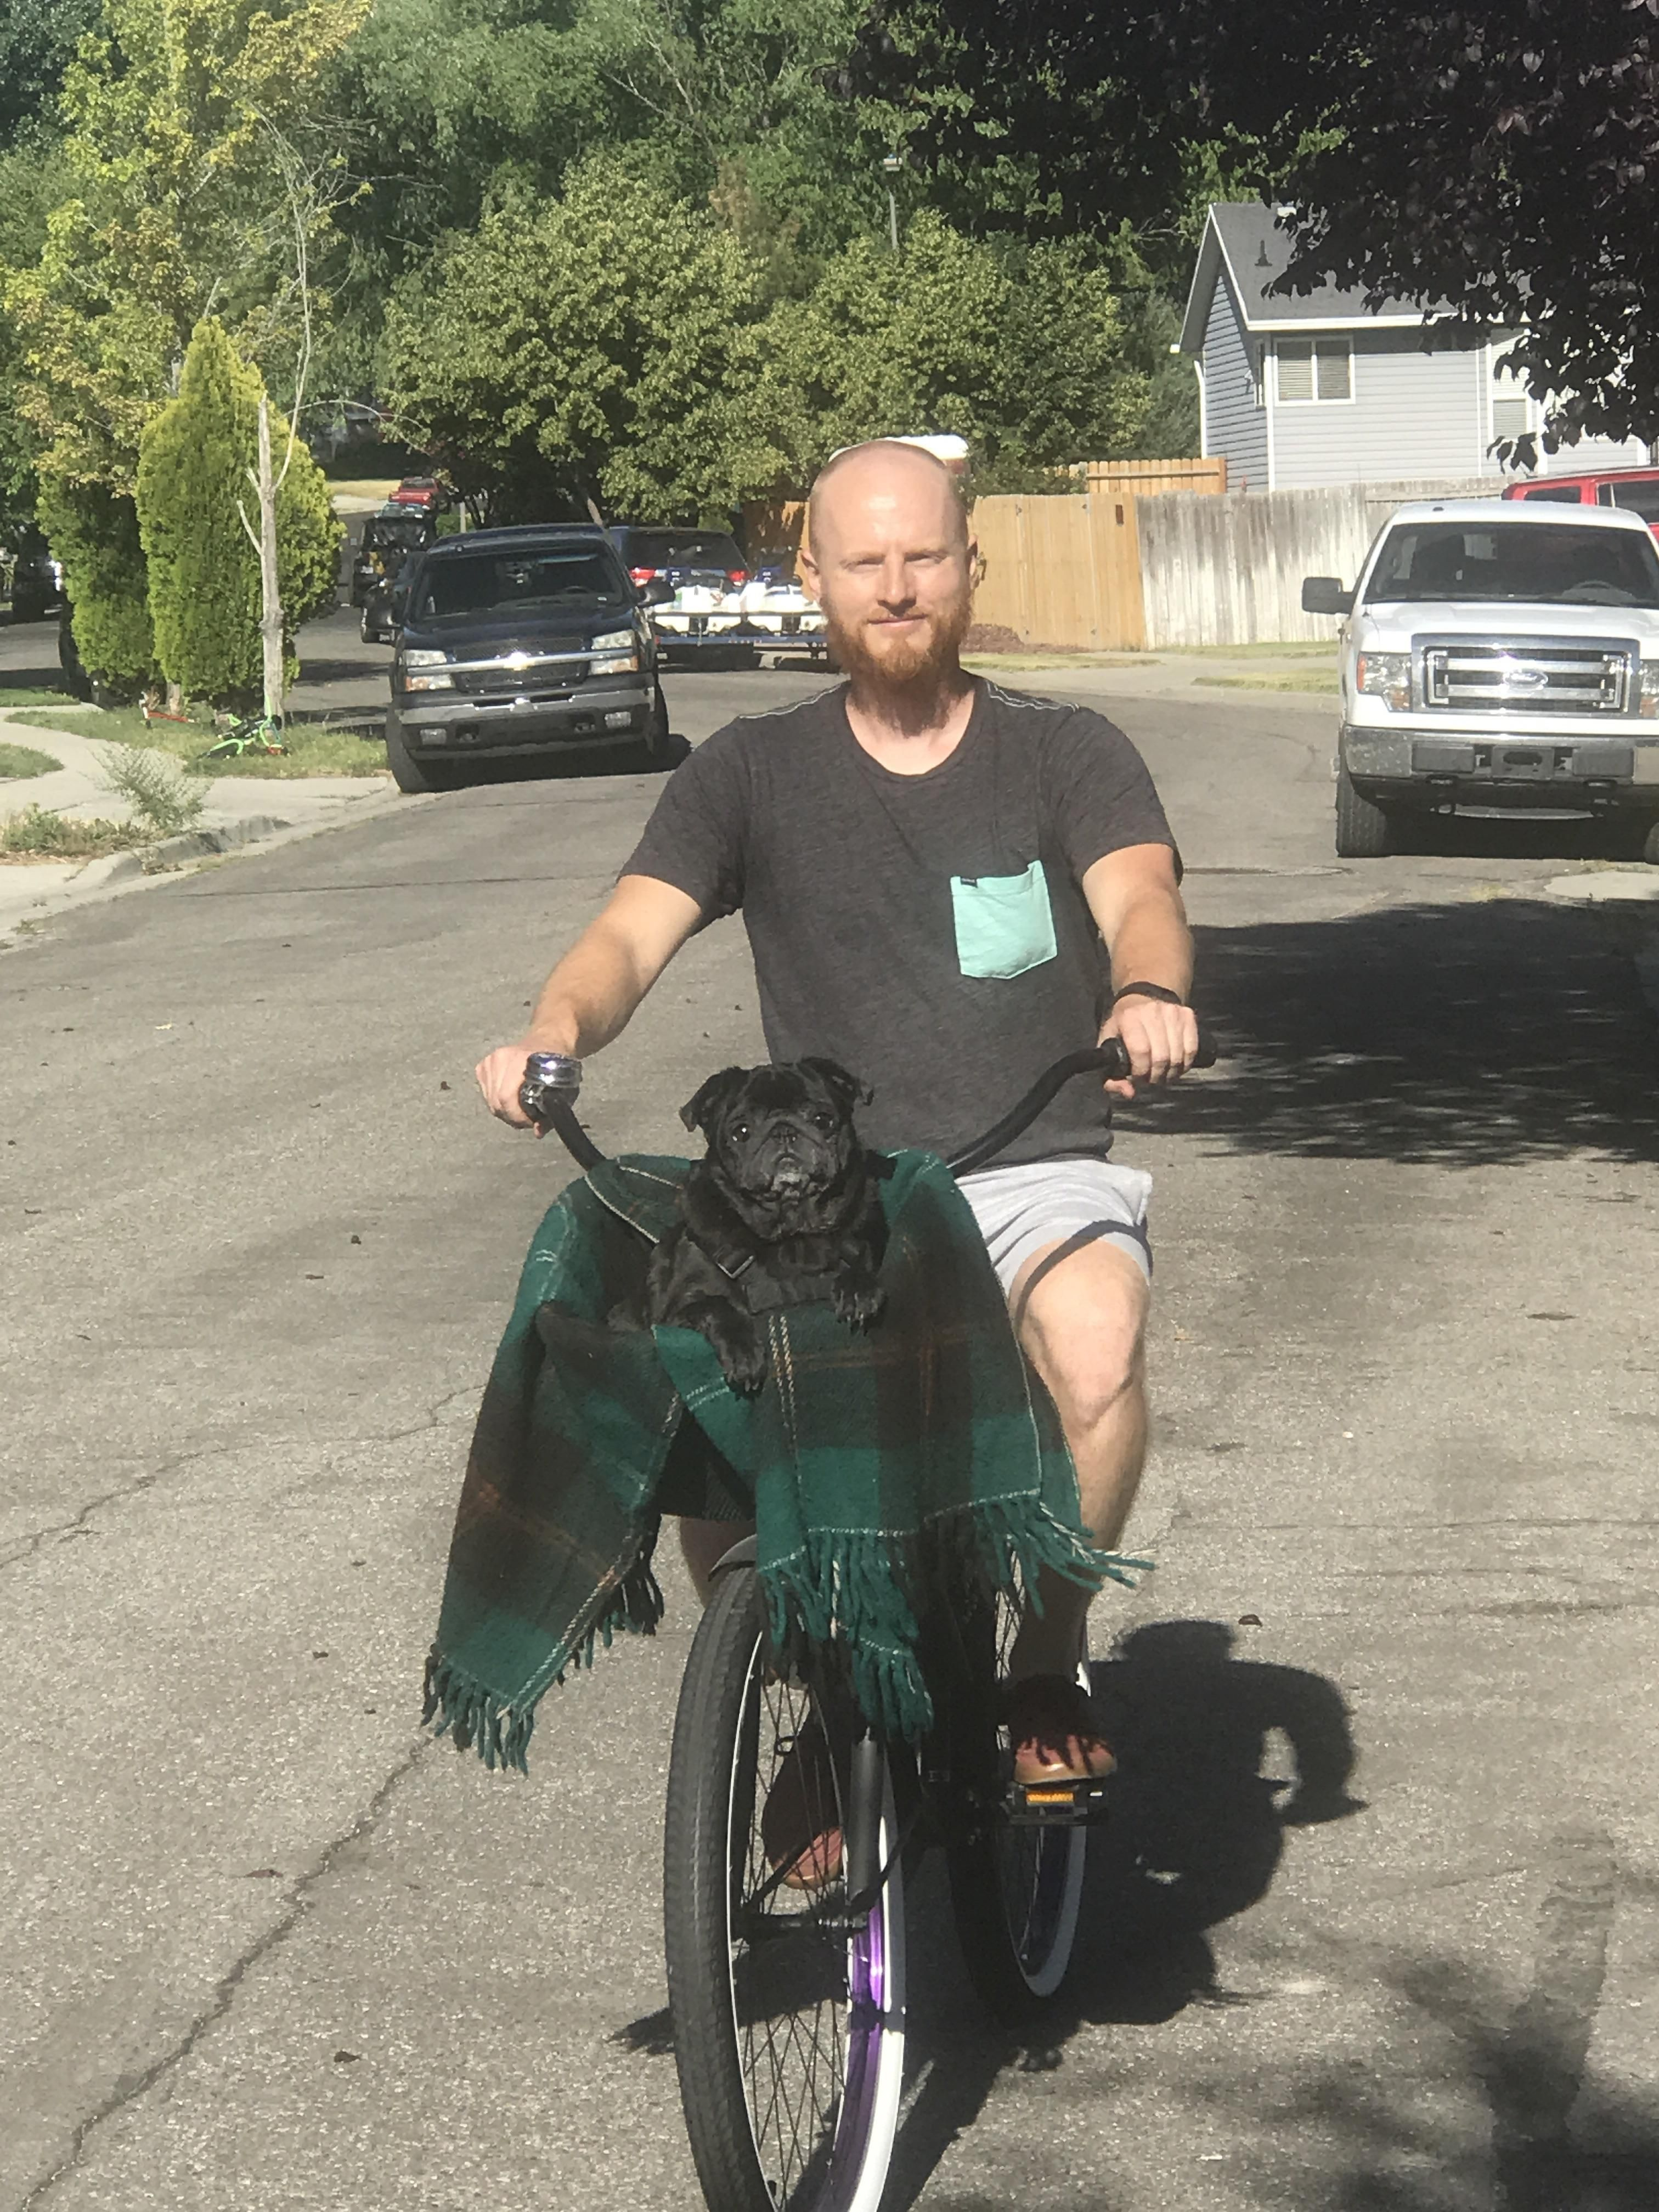 I see your dessert cats and am going all in with my pug on a bike ride!!